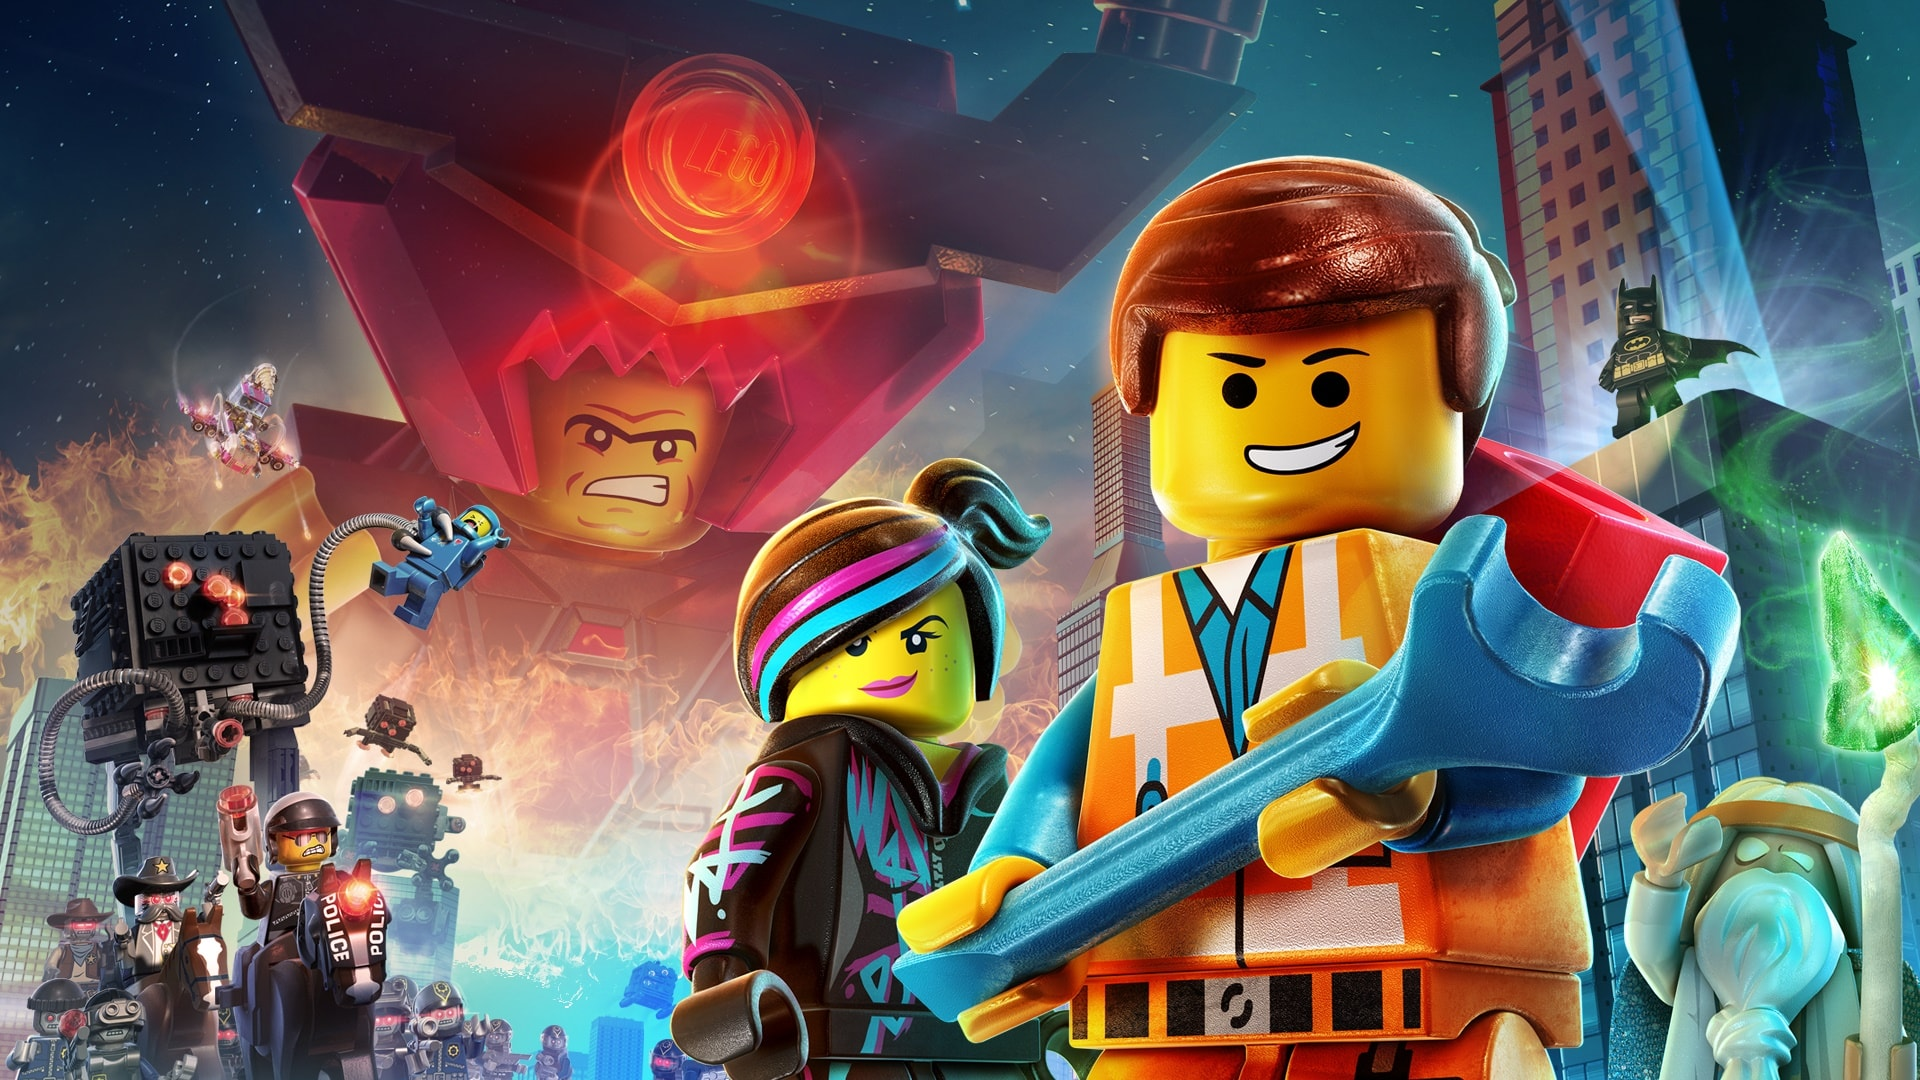 The Lego Movie HQ wallpapers